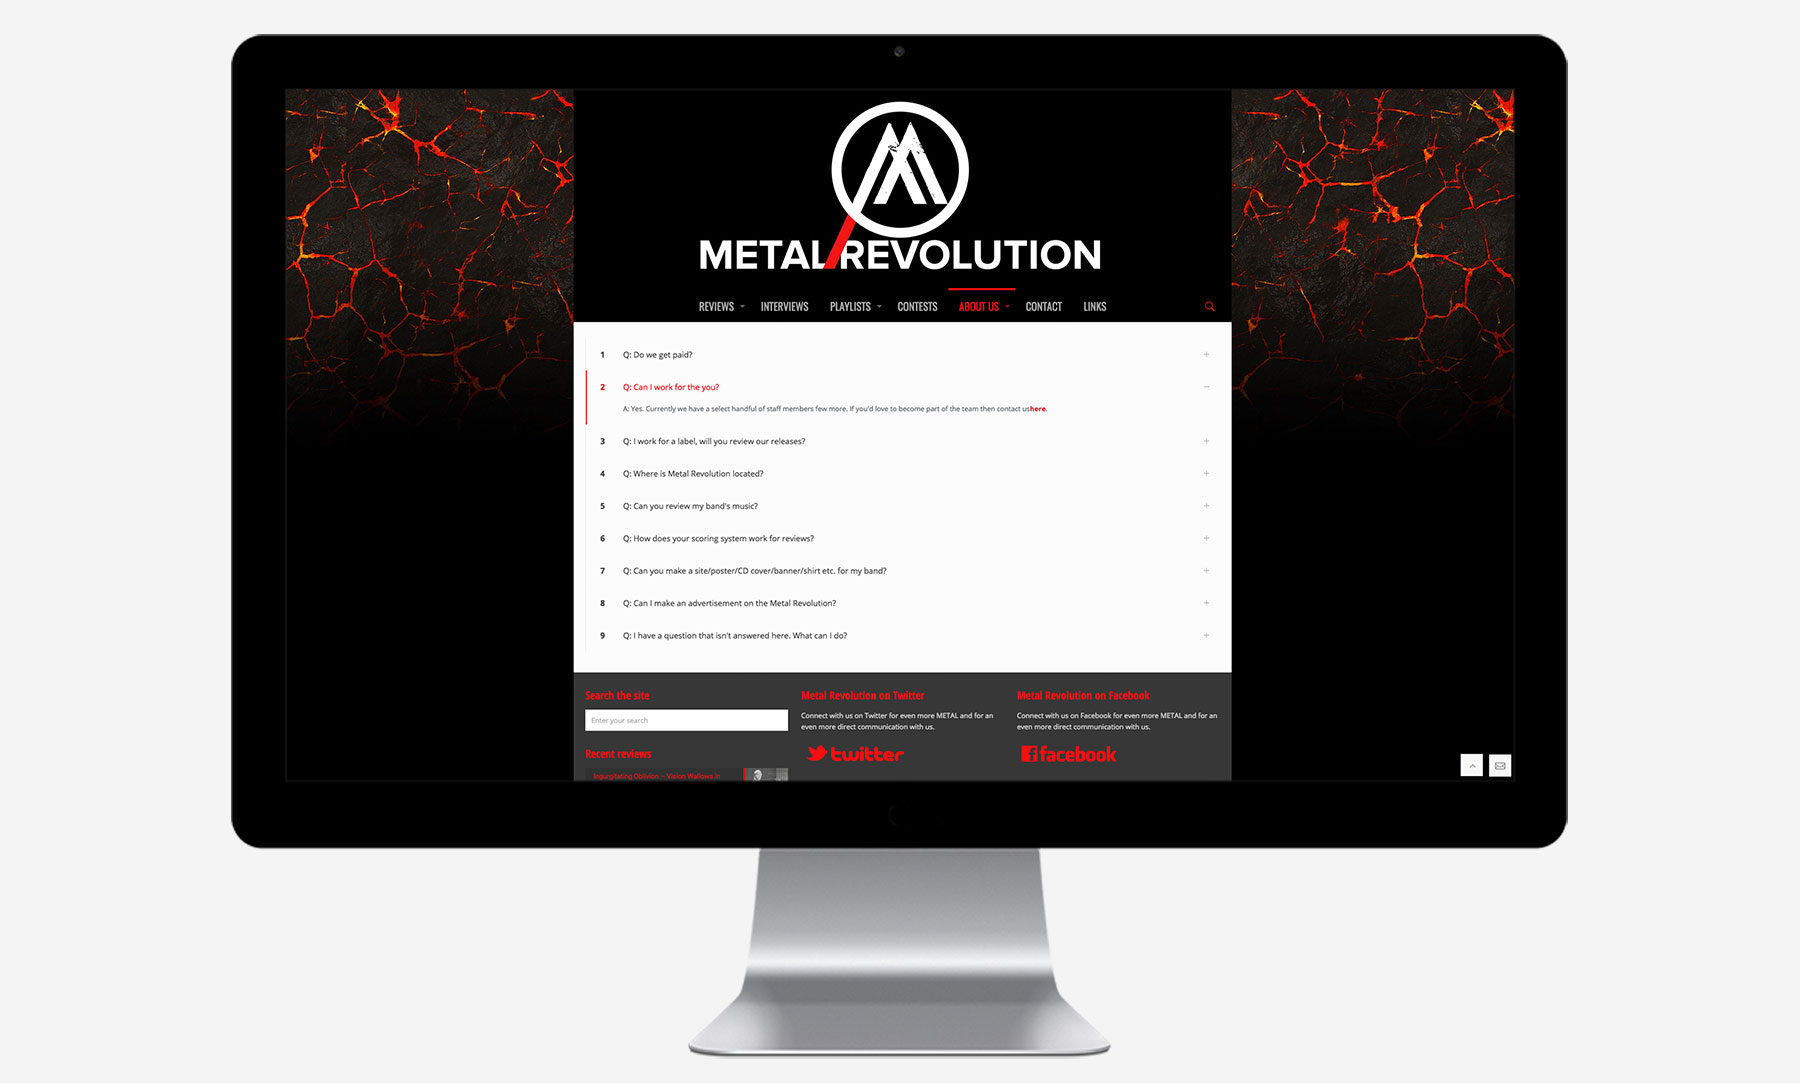 Metal Revolution: Desktop